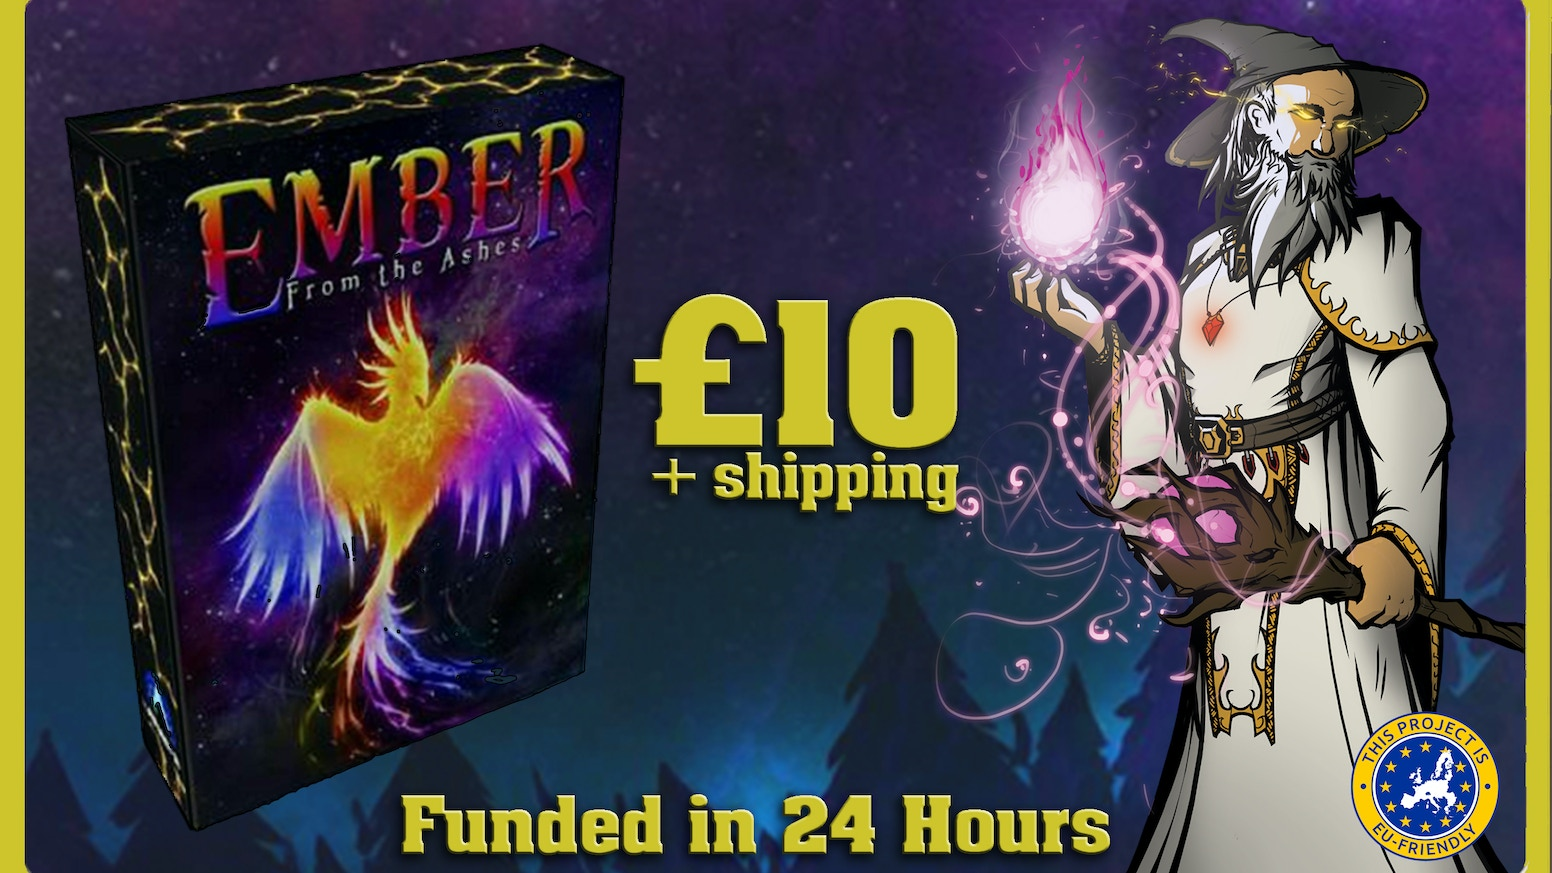 The standalone expansion to Ember: the Magical Card Game, containing 56 exciting cards and super low worldwide shipping.